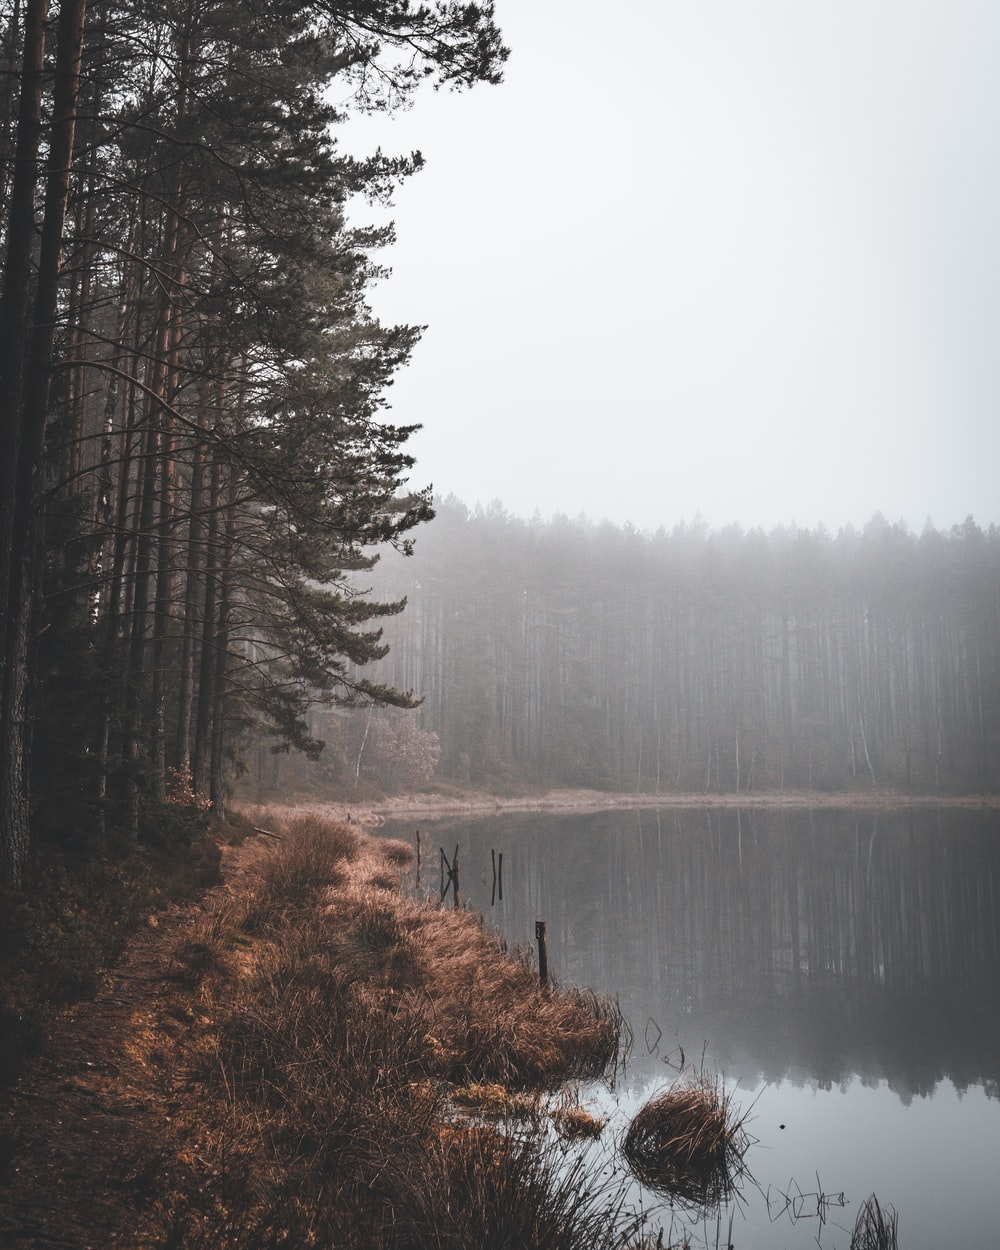 green trees beside lake during foggy weather